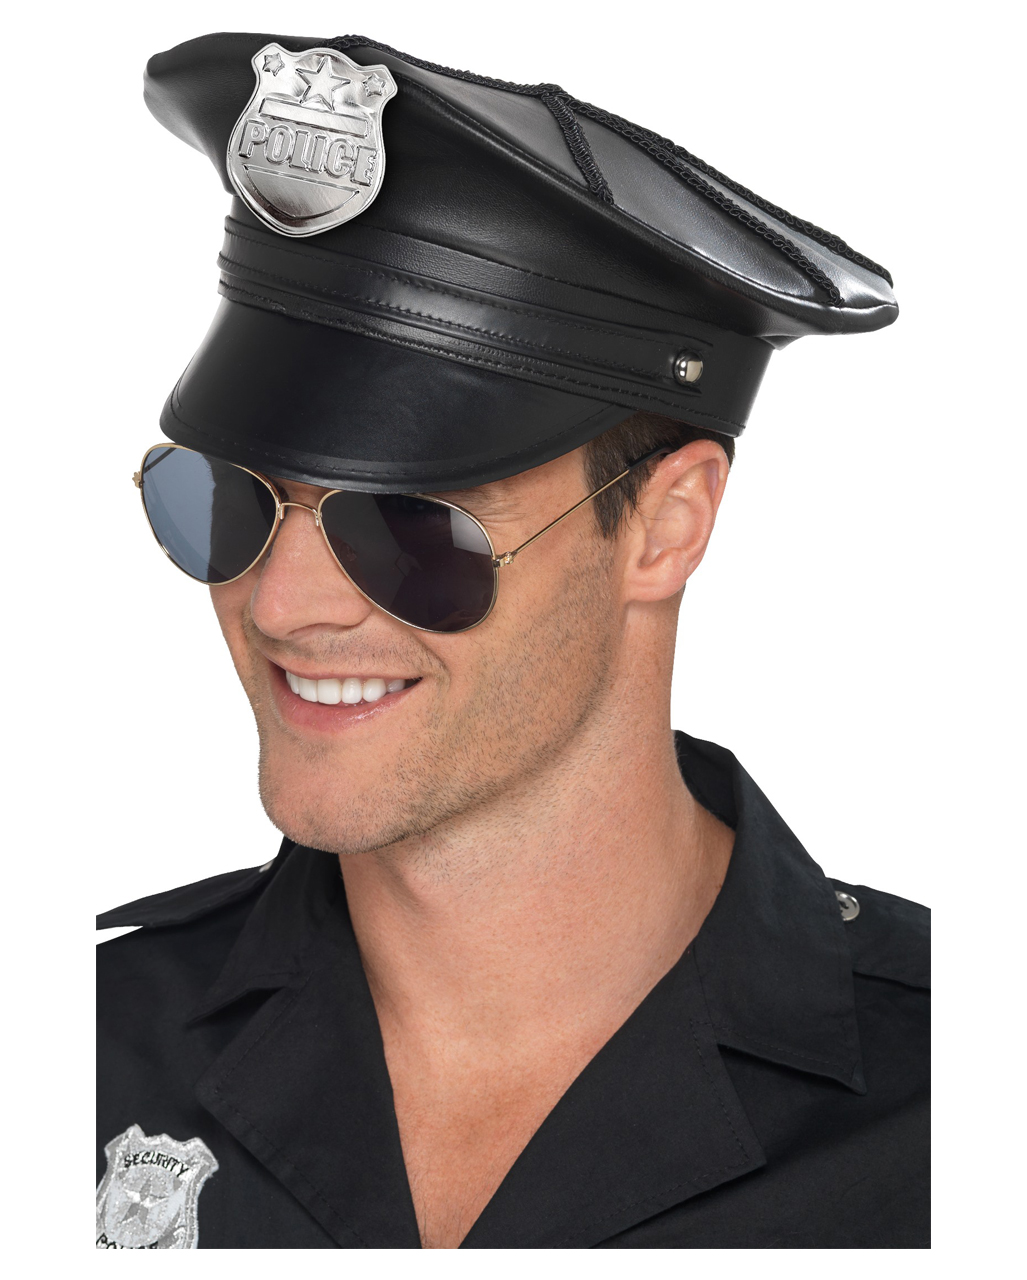 US Police Officer Police Hat as an accessory  04e01ea13ecf